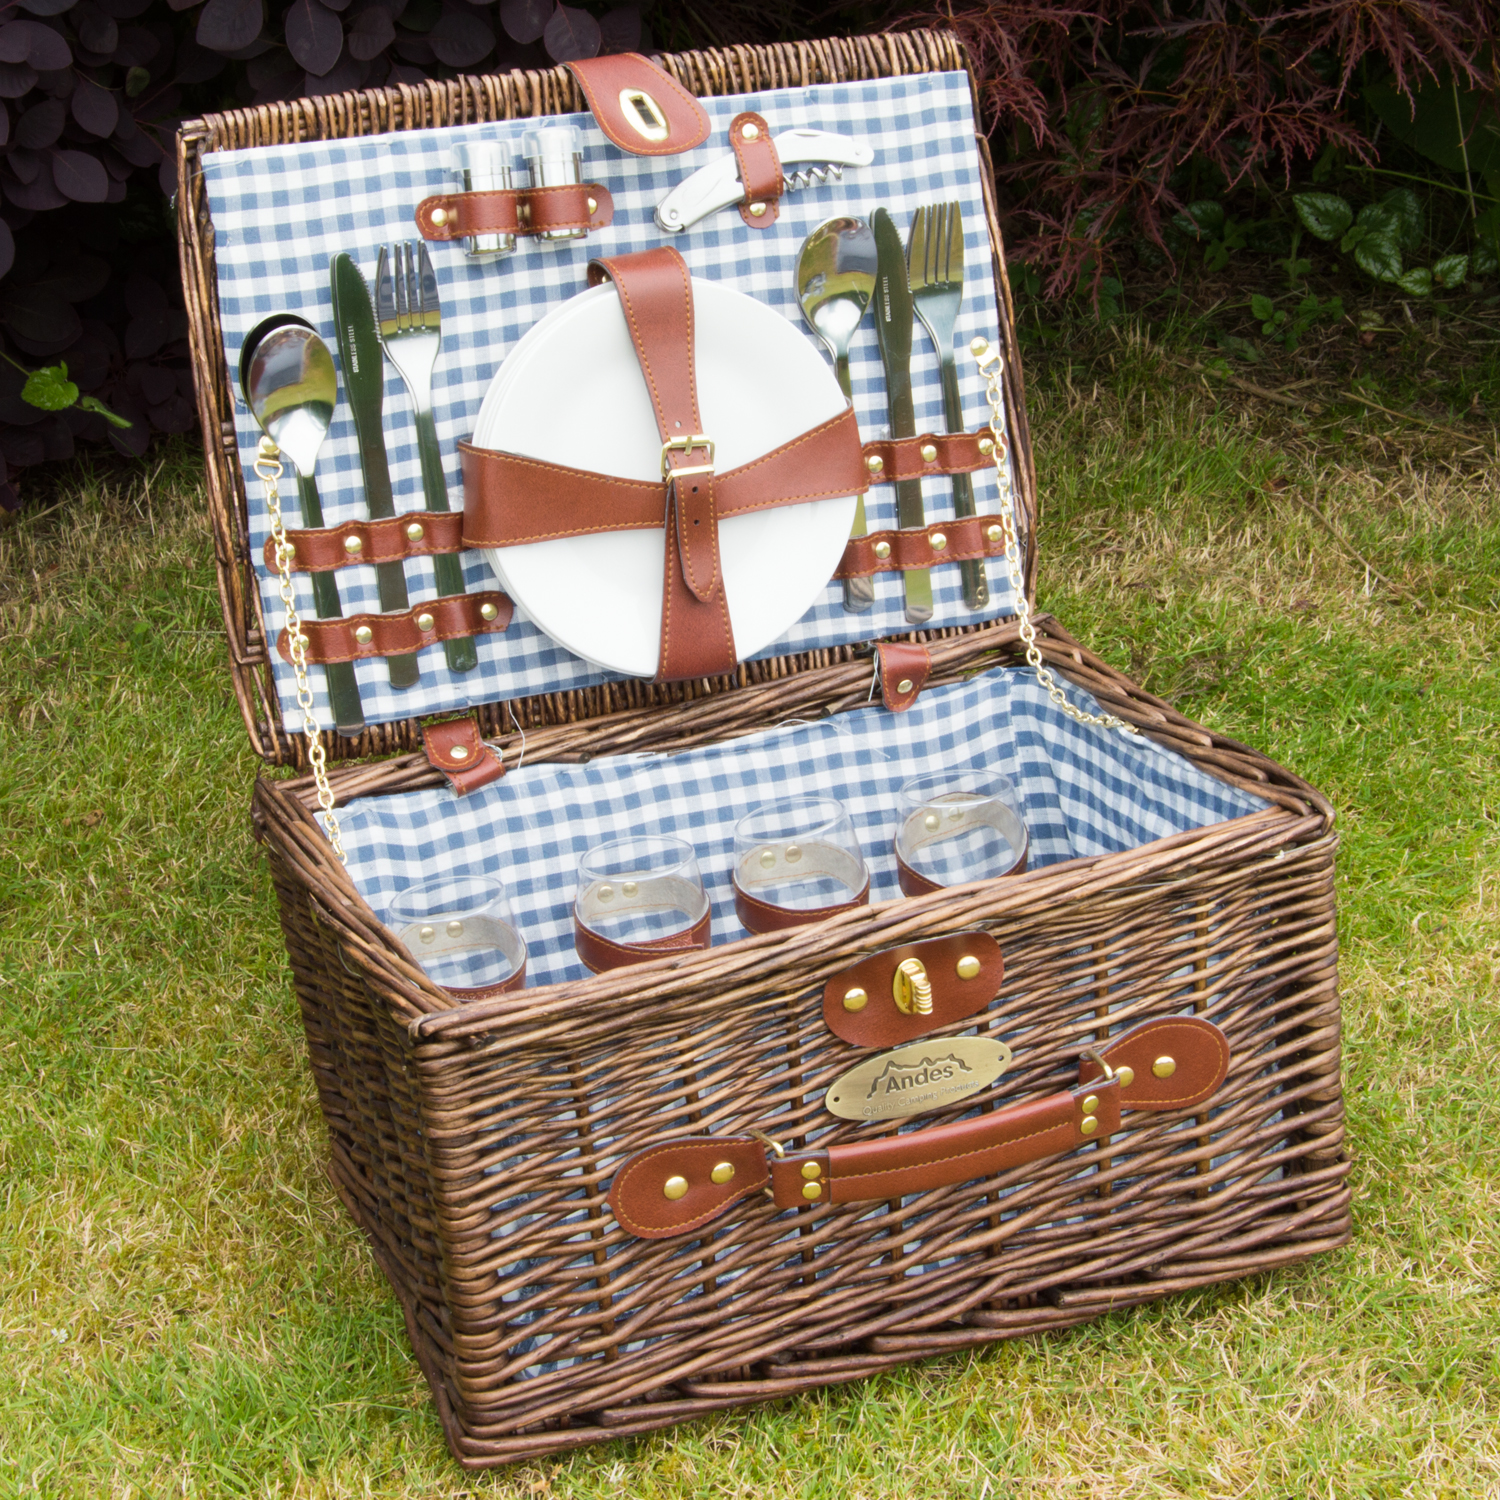 Luxury picnic baskets uk : Andes person luxury wicker basket outdoor summer picnic